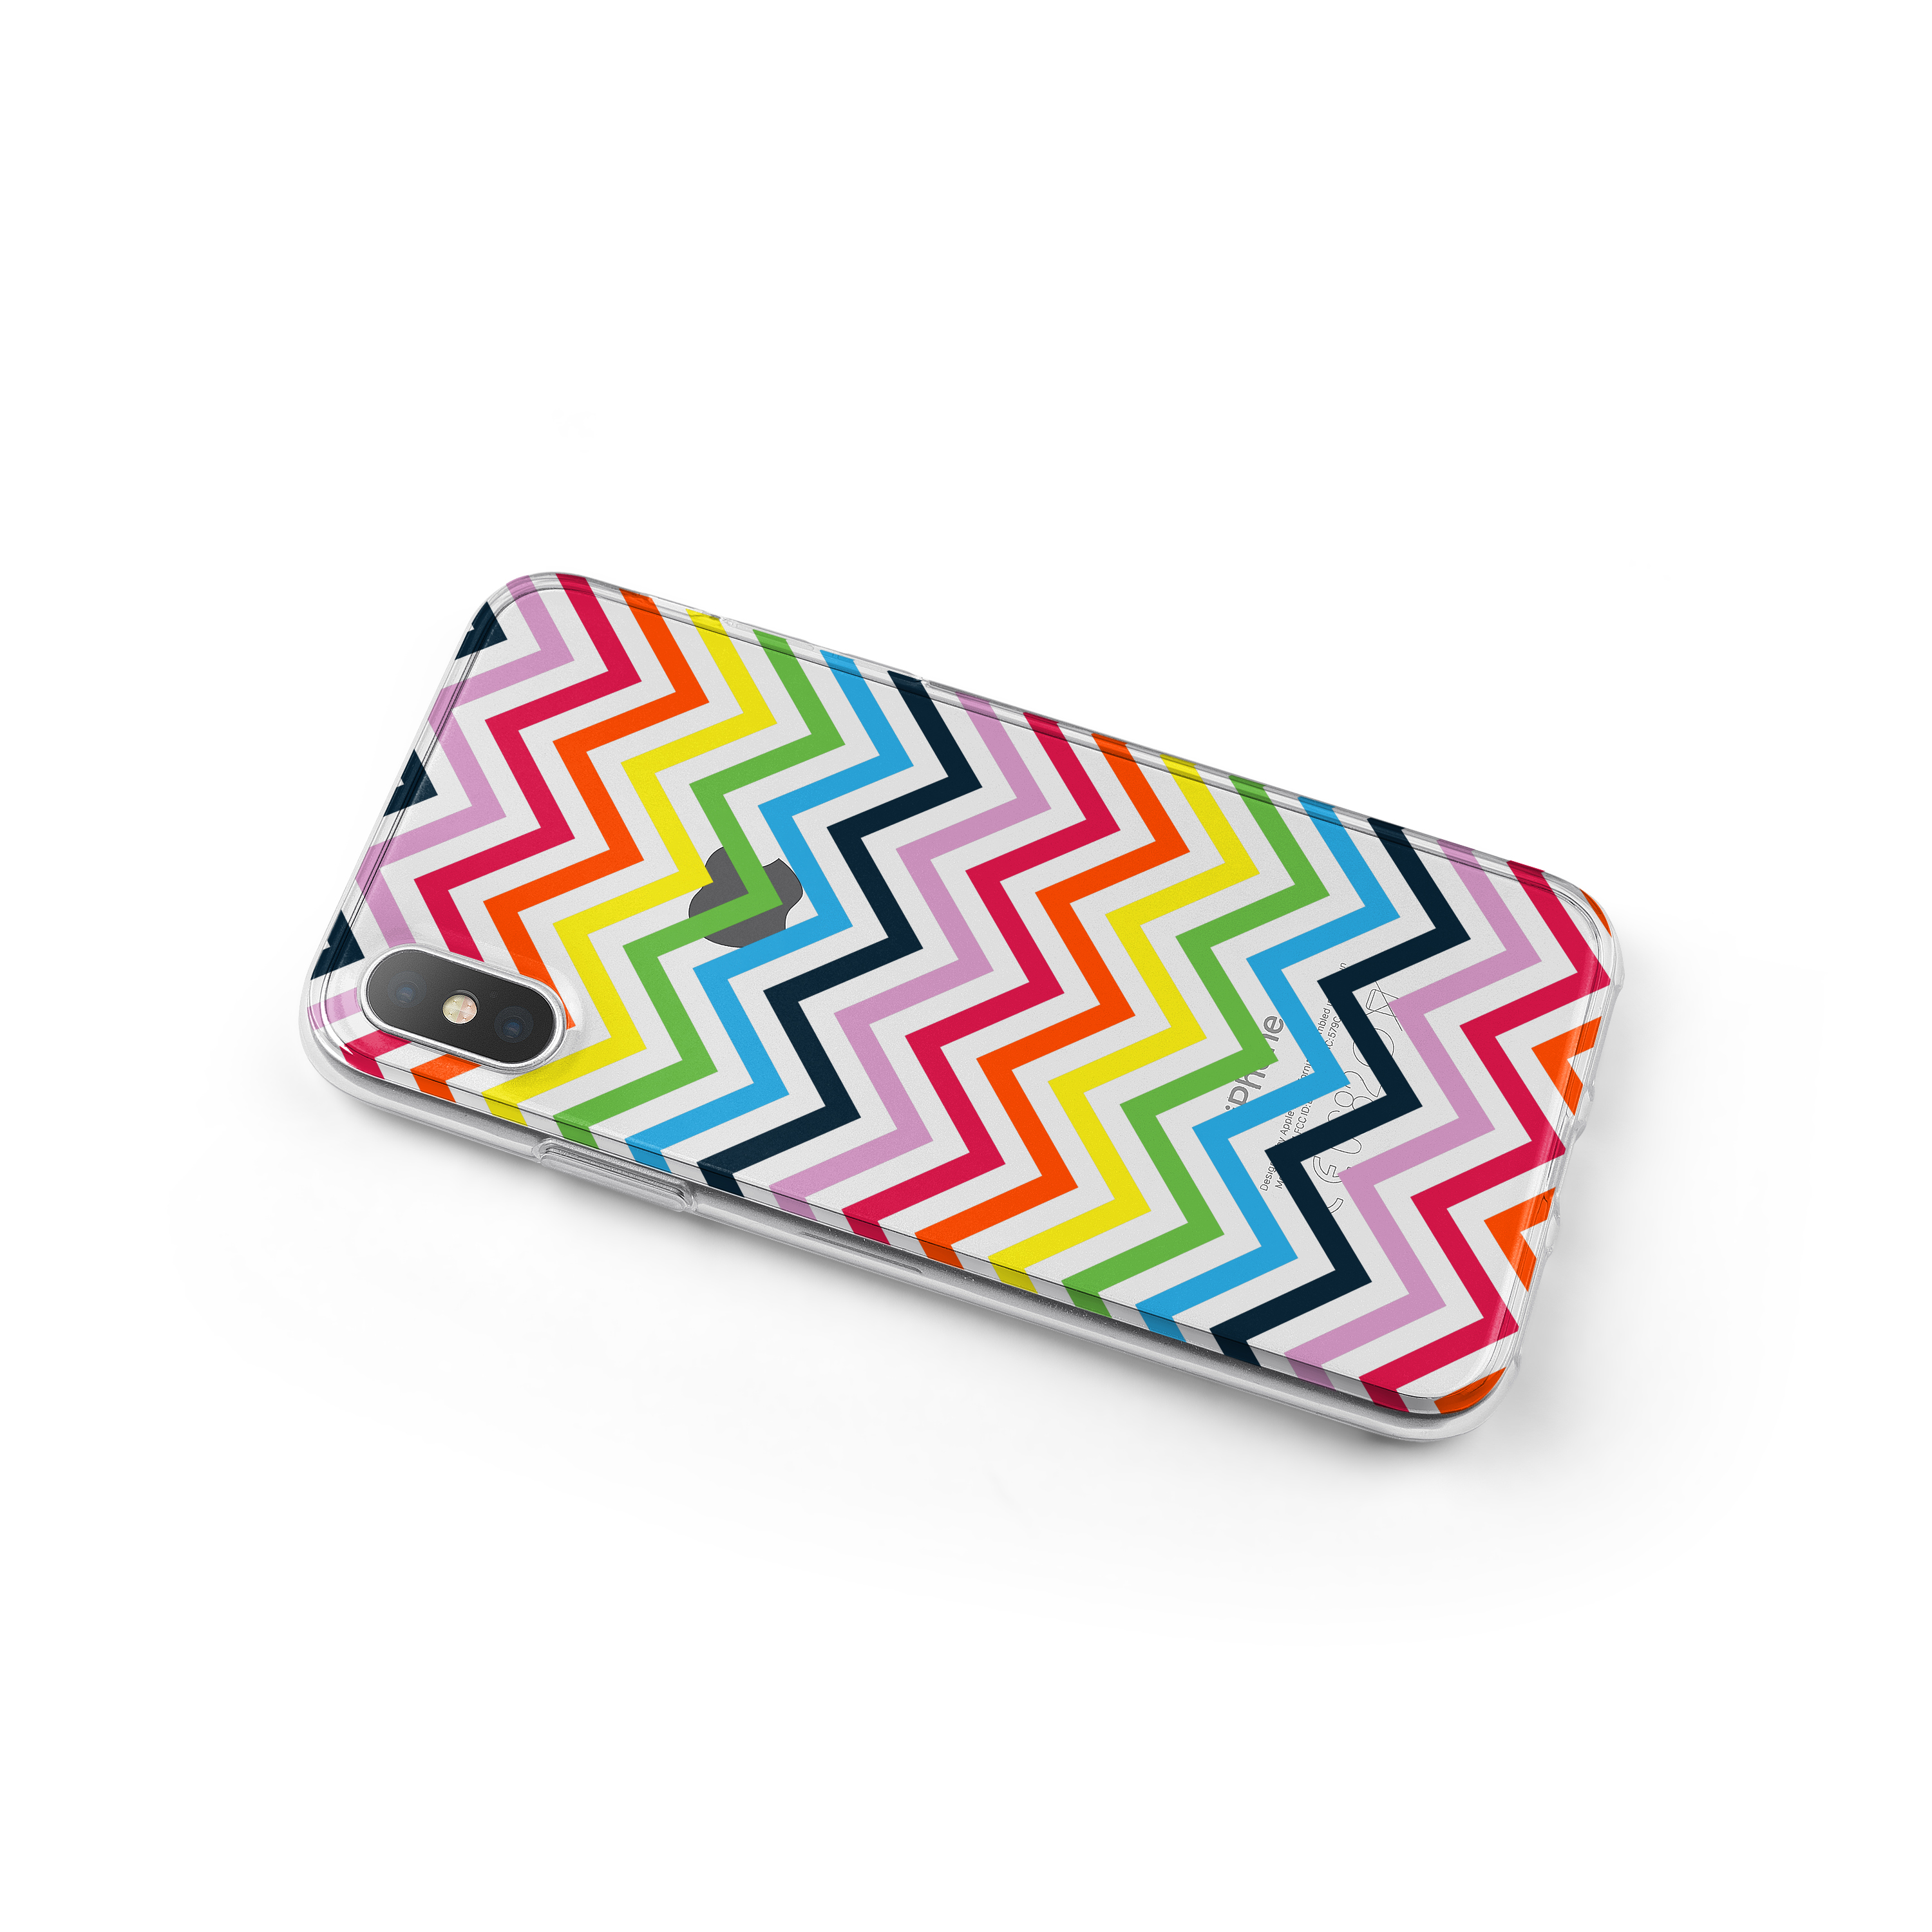 DistinctInk Clear Shockproof Hybrid Case for iPhone X / XS (NOT Max) - TPU Bumper, Acrylic Back, Tempered Glass Screen Protector - Rainbow Chevron